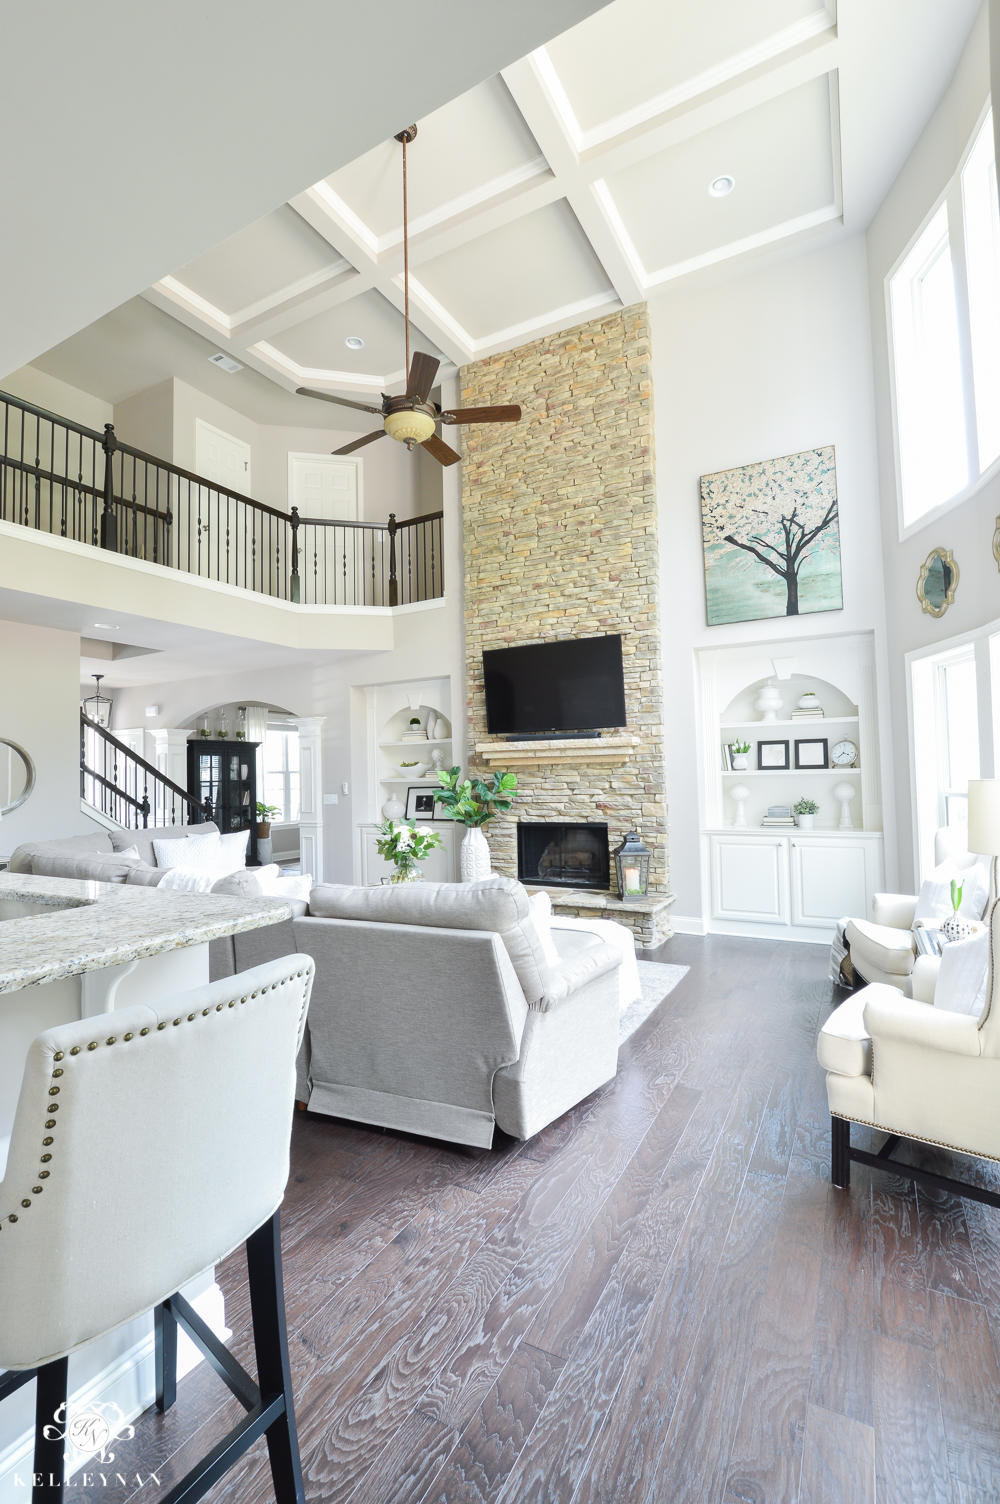 Shades of Summer Home Tour with Neutrals and Naturals- Two story living room with coffered ceiling and stacked stone fireplace with builtins